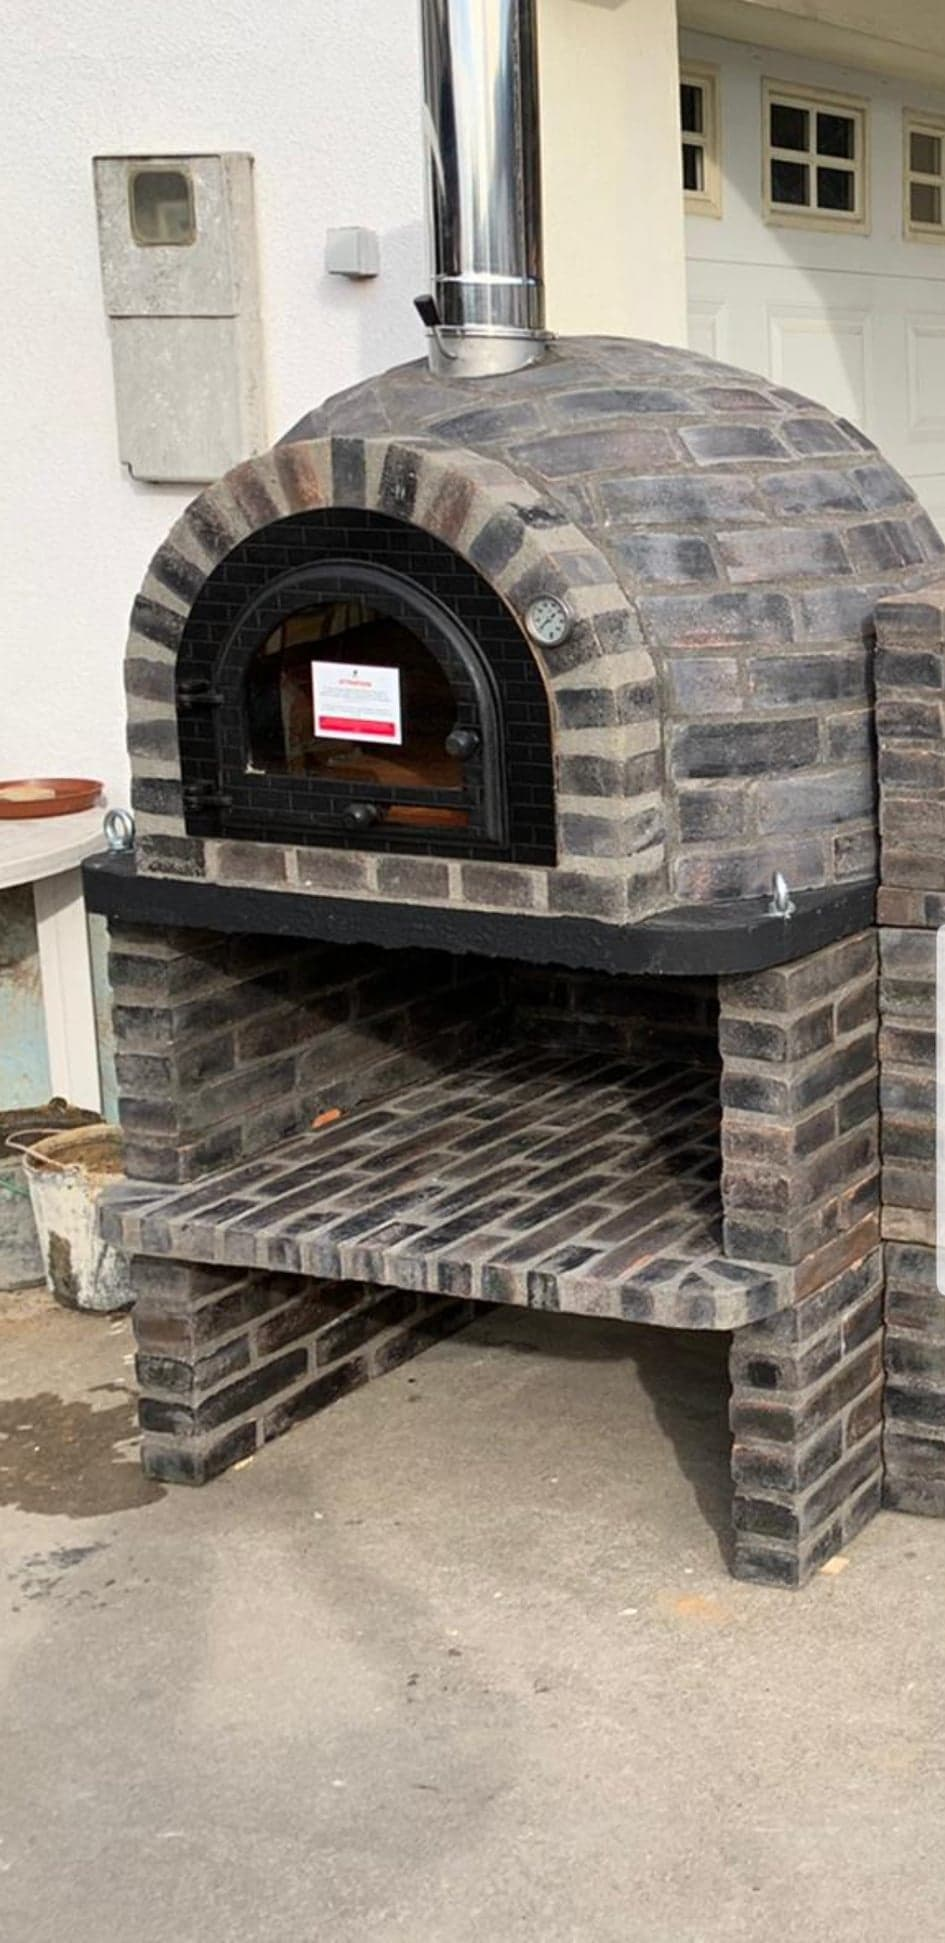 Traditional Wood Fired Brick Pizza Oven - Rústico Preto Stand